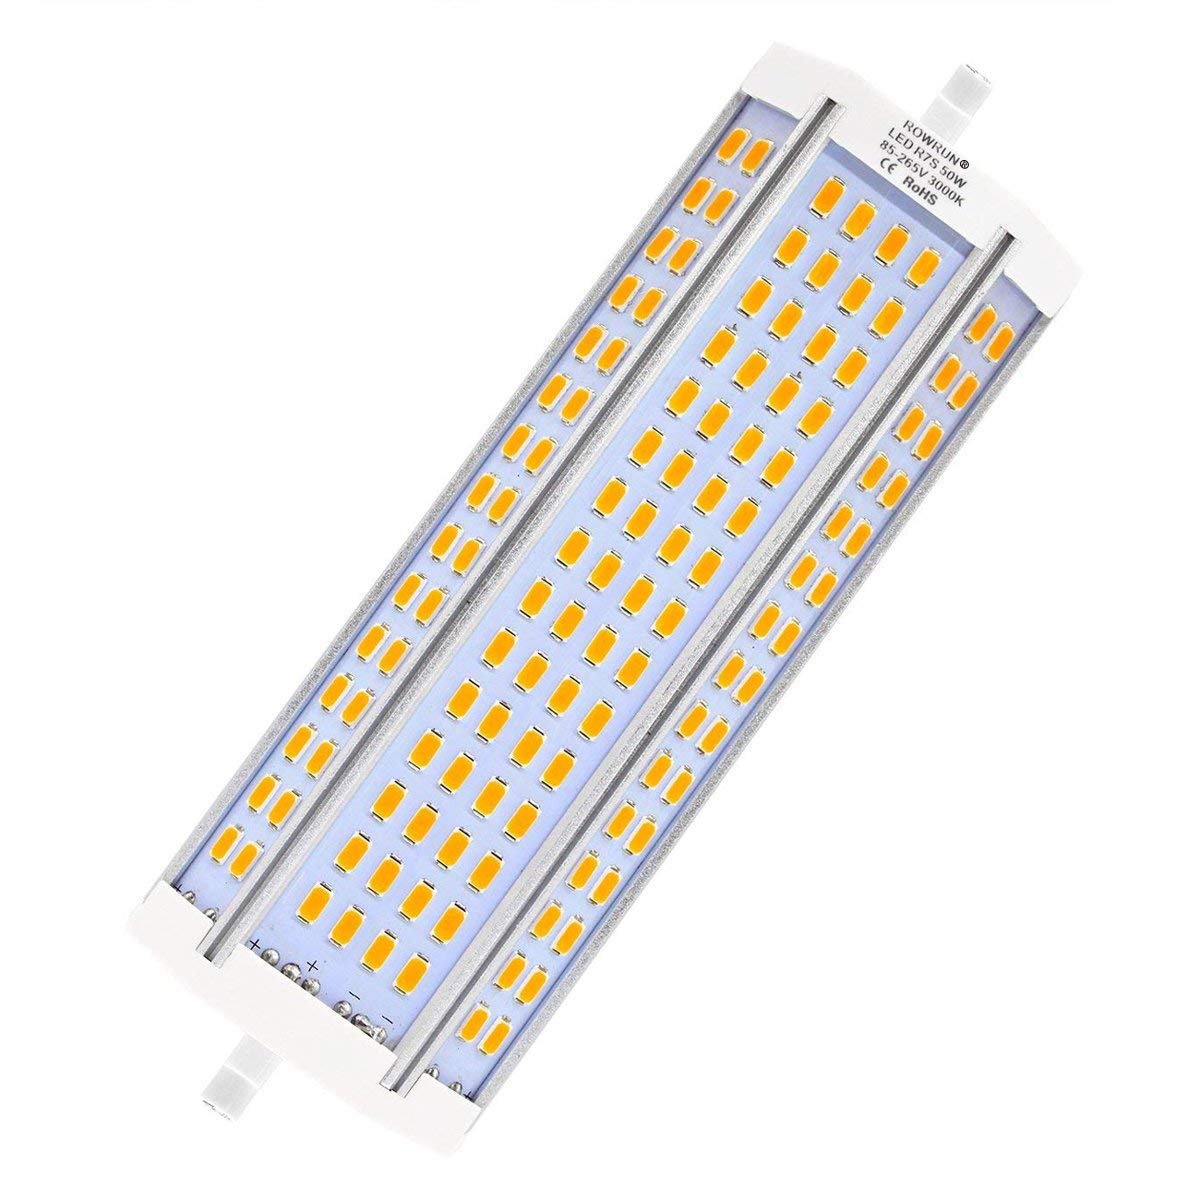 R7S LED 189mm 50W Non Dimmable Warm White 3000K Type J Light Bulb J189 500W Double Ended Halogen Bulb Replacement 4700LM AC85-265V by Rowrun